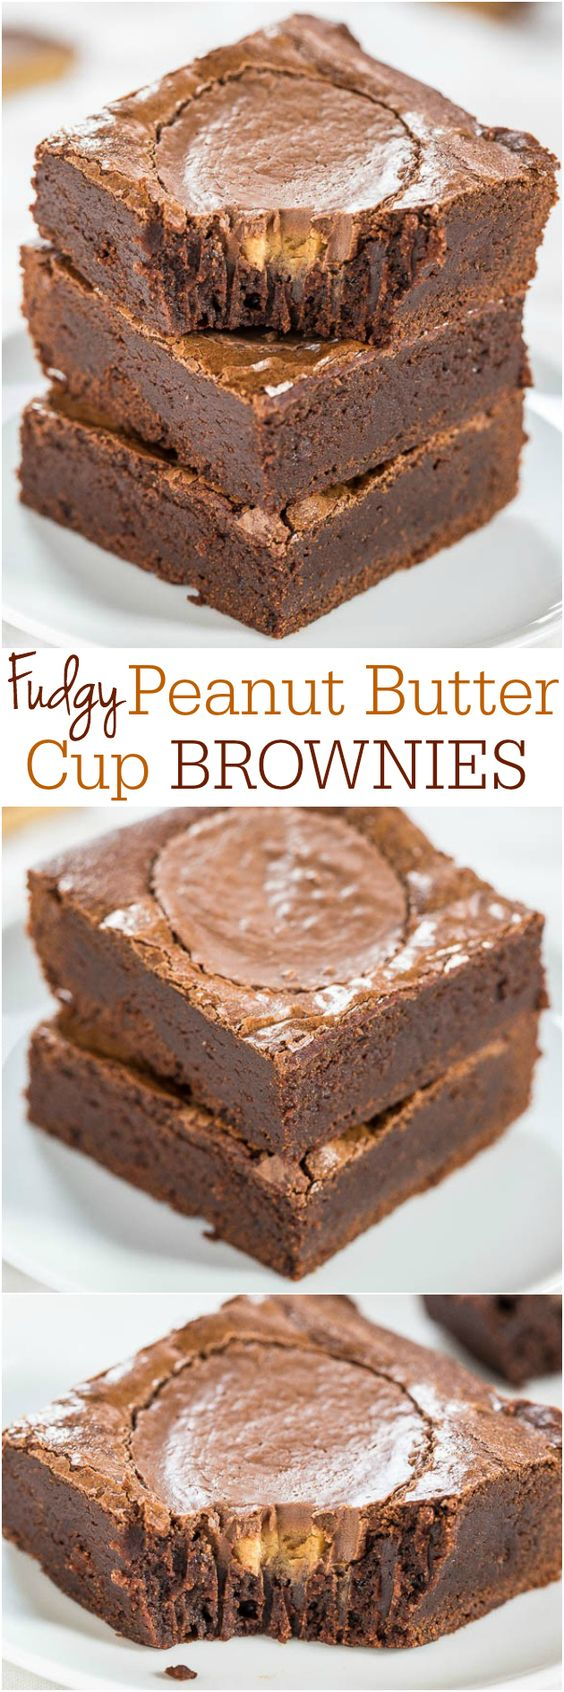 Peanut butter cup brownies, Cup brownie and Peanut butter cups on ...